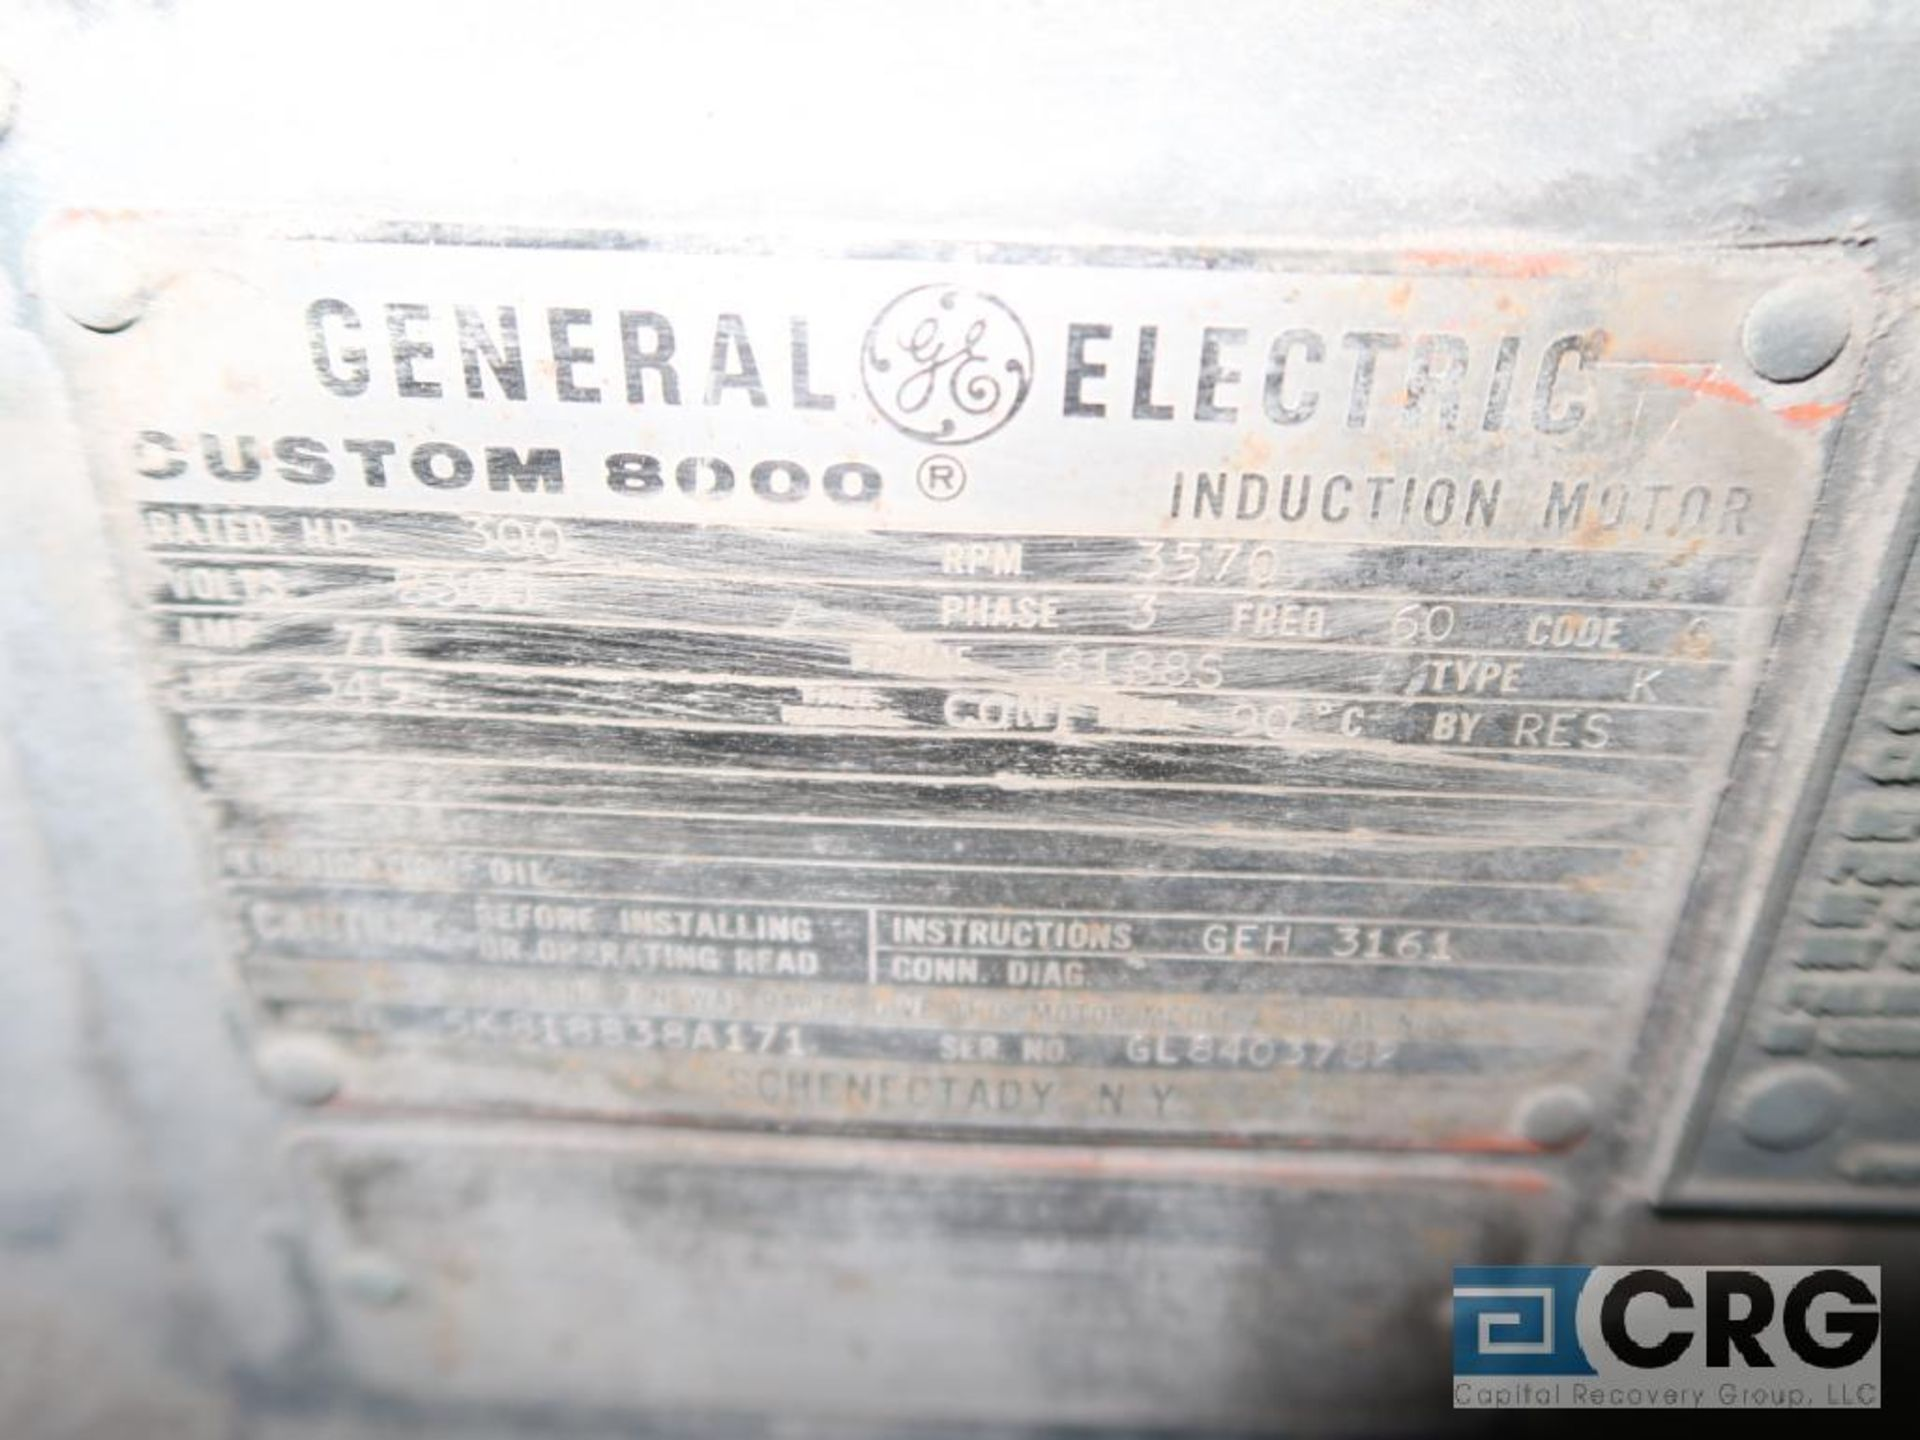 GE motor, 300 HP, 3,570 RPM, 2,300 volts, 8188S frame, equipment #MS531 (496 Dock Area) - Image 3 of 3